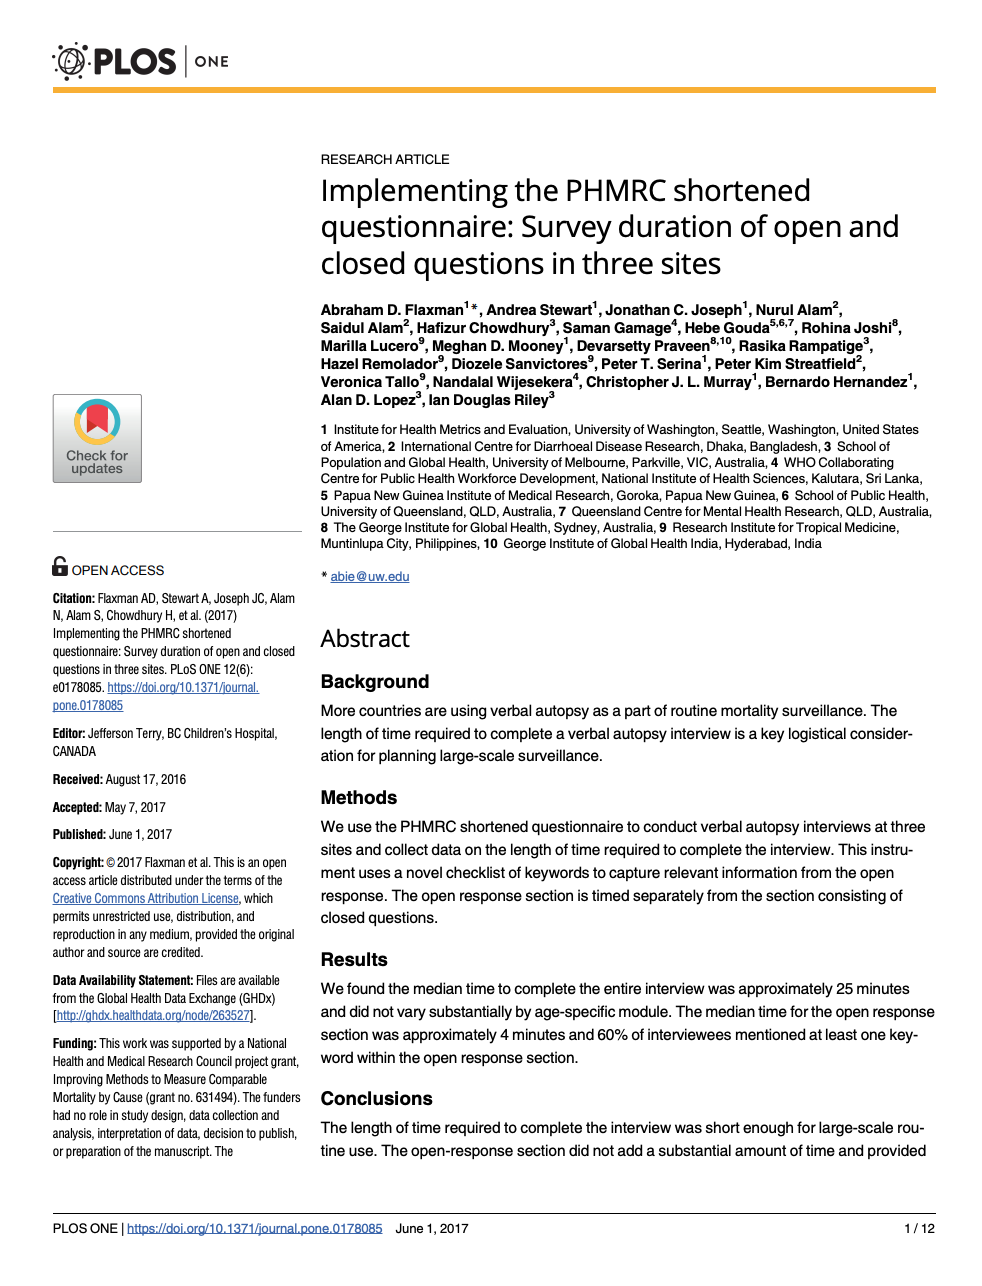 Implementing the PHMRC shortened questionnaire: Survey duration of open and closed questions in three sites thumbnail